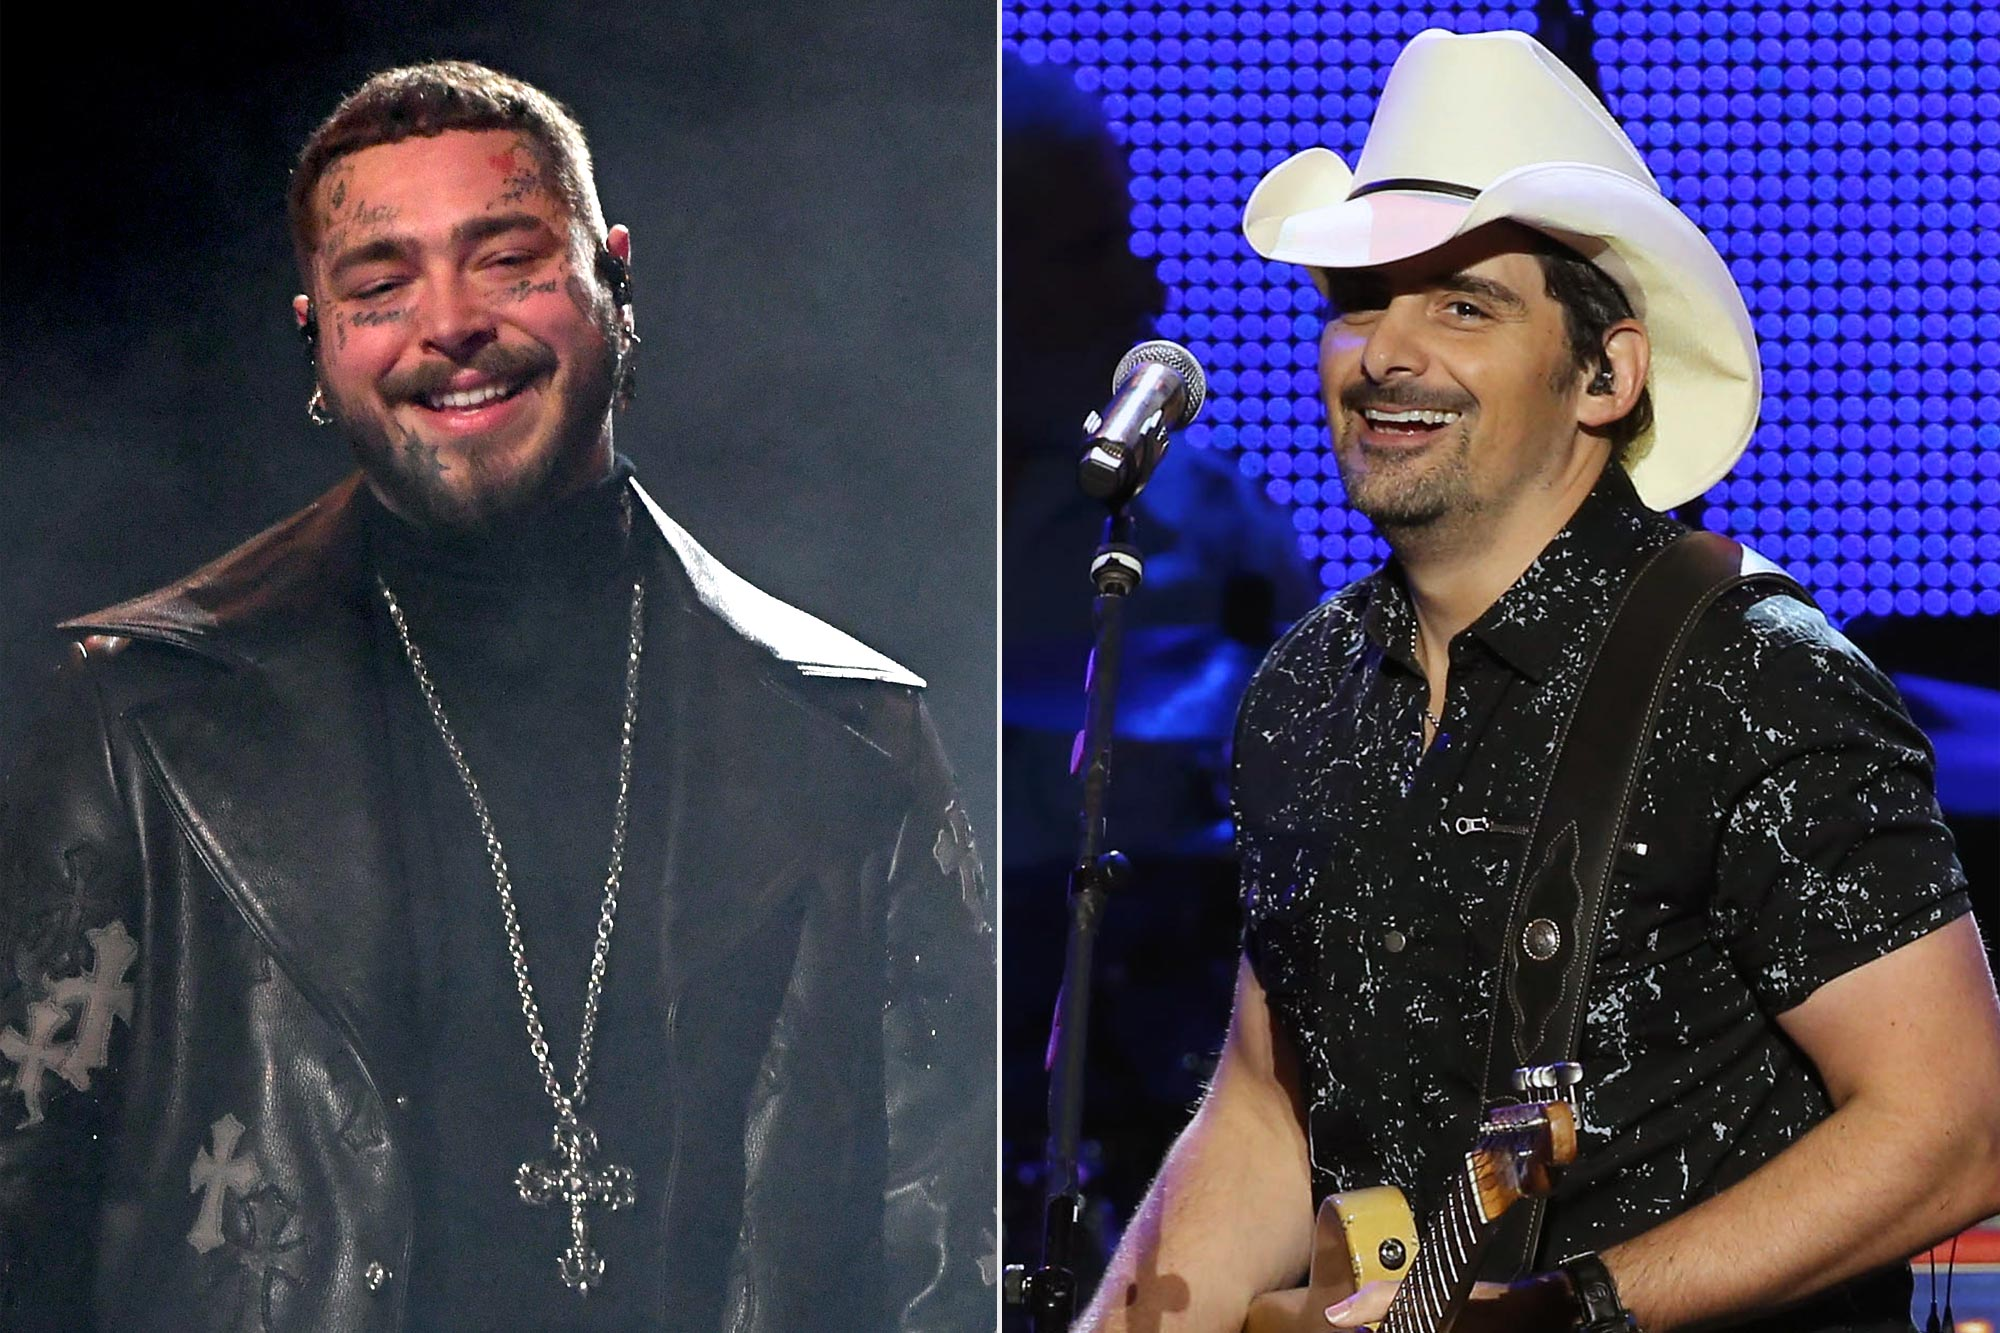 Watch Post Malone go country and cover Brad Paisley's 'I'm Gonna Miss Her' at Texas benefit